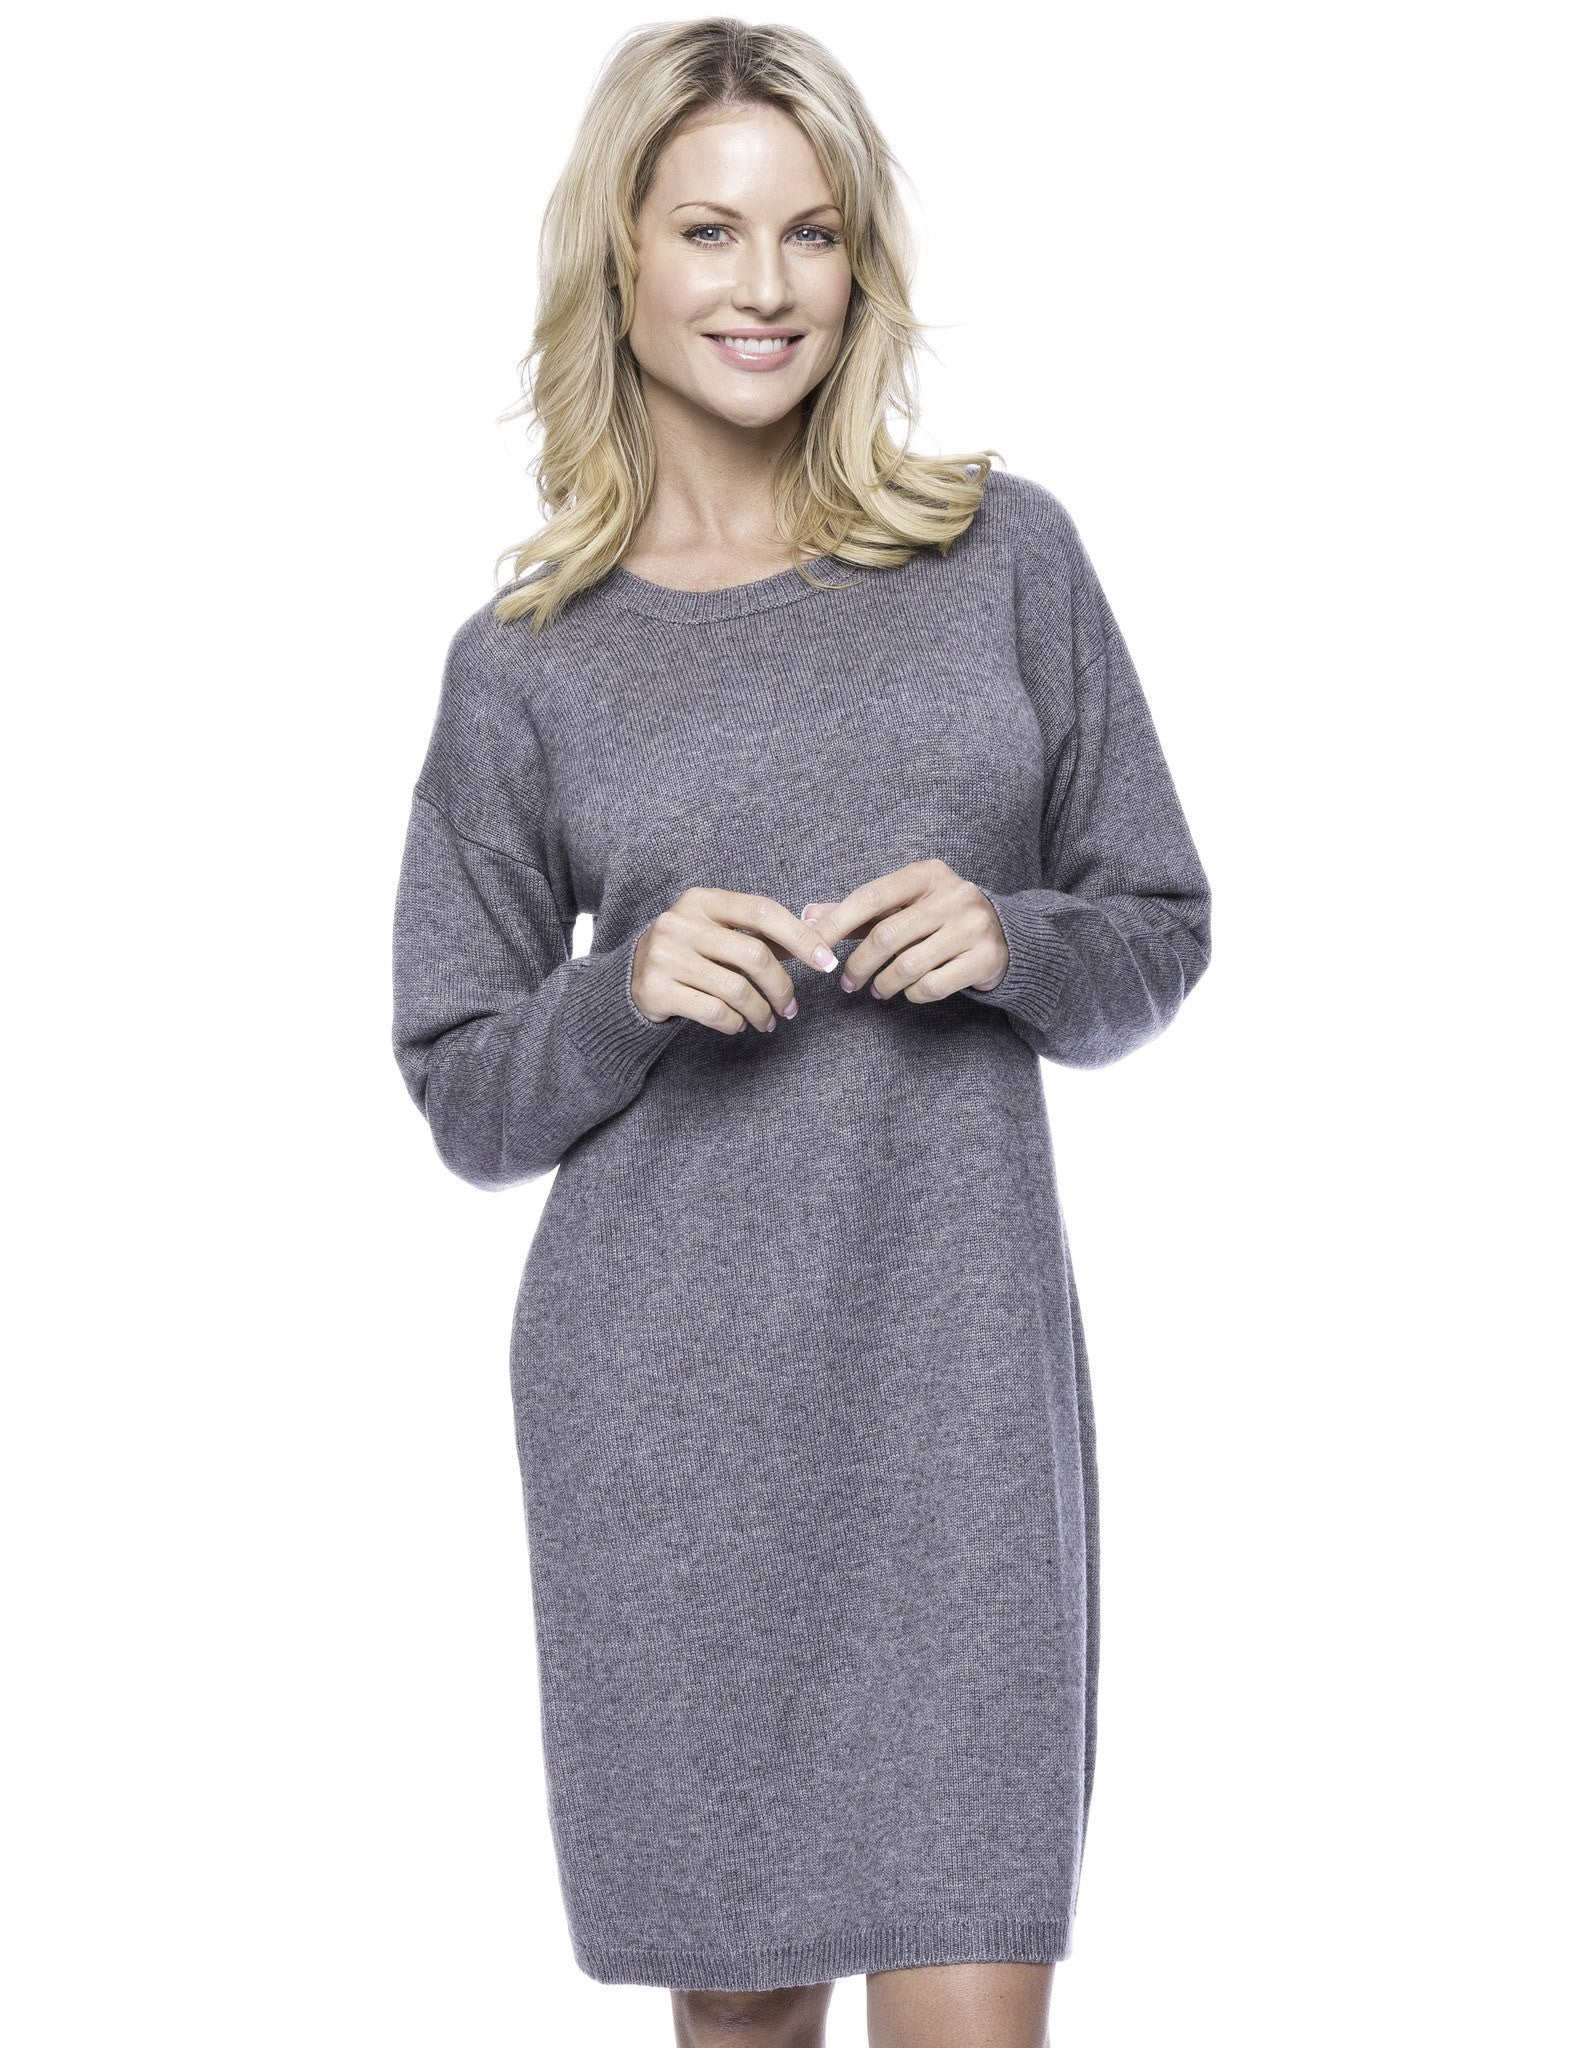 Tocco Reale Women's Wool Blend Sweater Dress